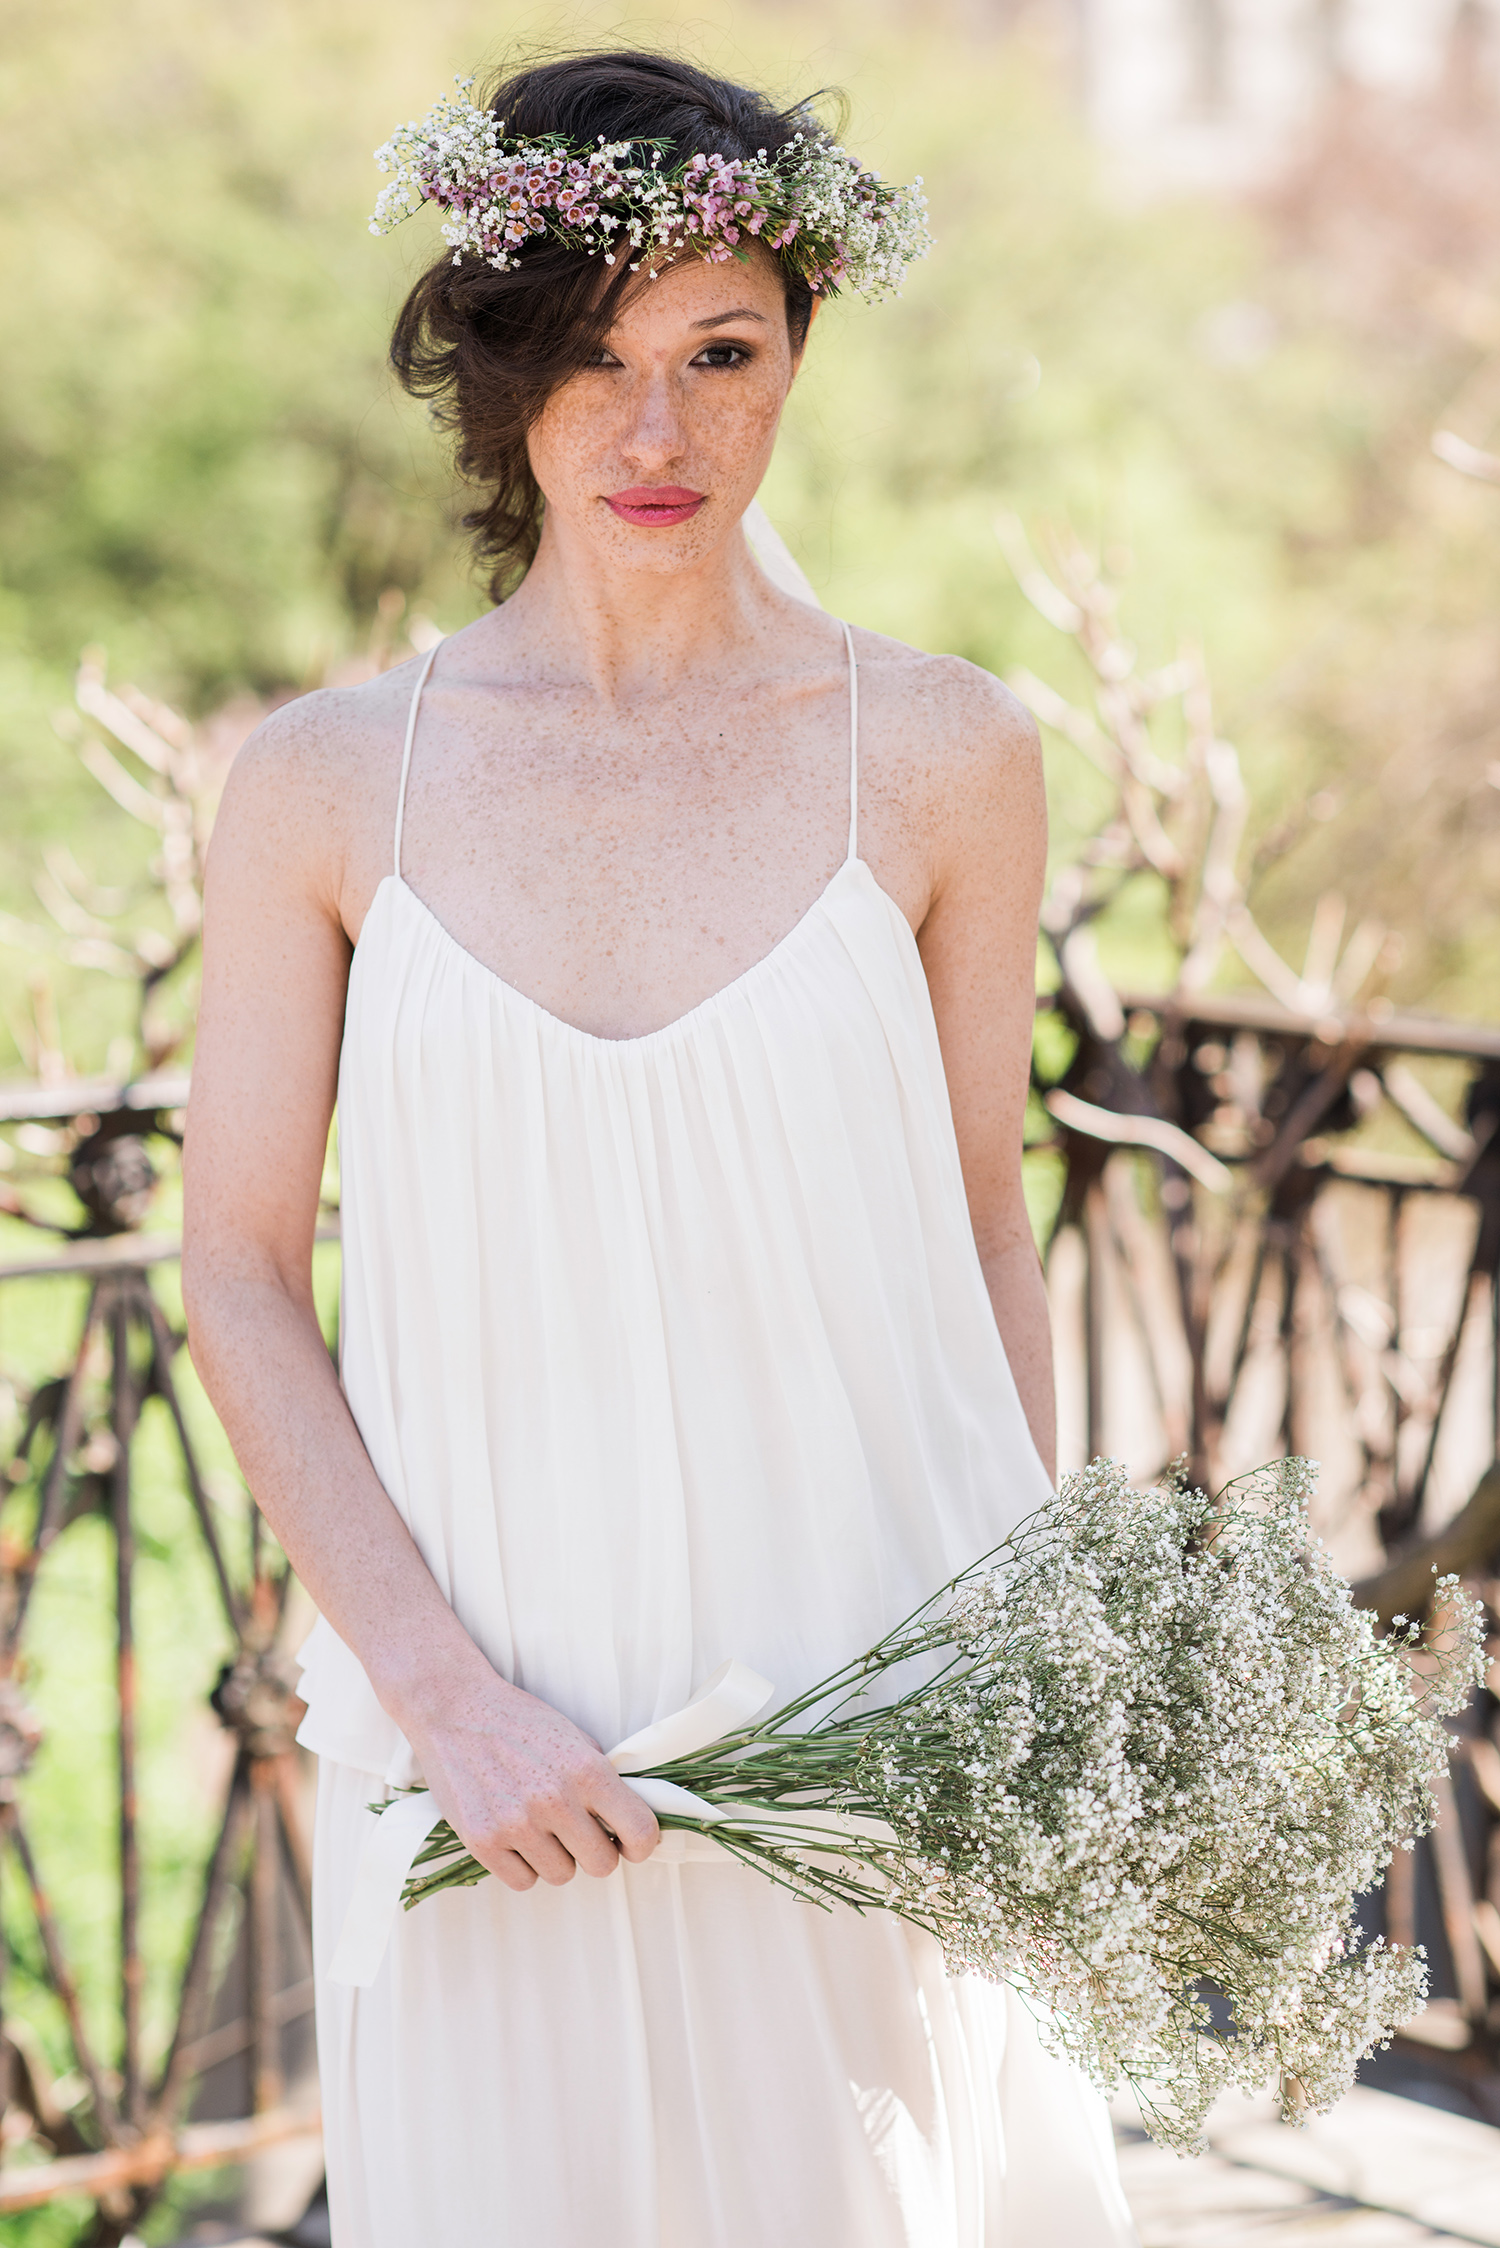 Spring flower crown for the rustic bride by stellar style events if youre looking for some more floral crown inspiration be sure to check our flower crown ideas for the boho chic bride the romantic bride izmirmasajfo Choice Image